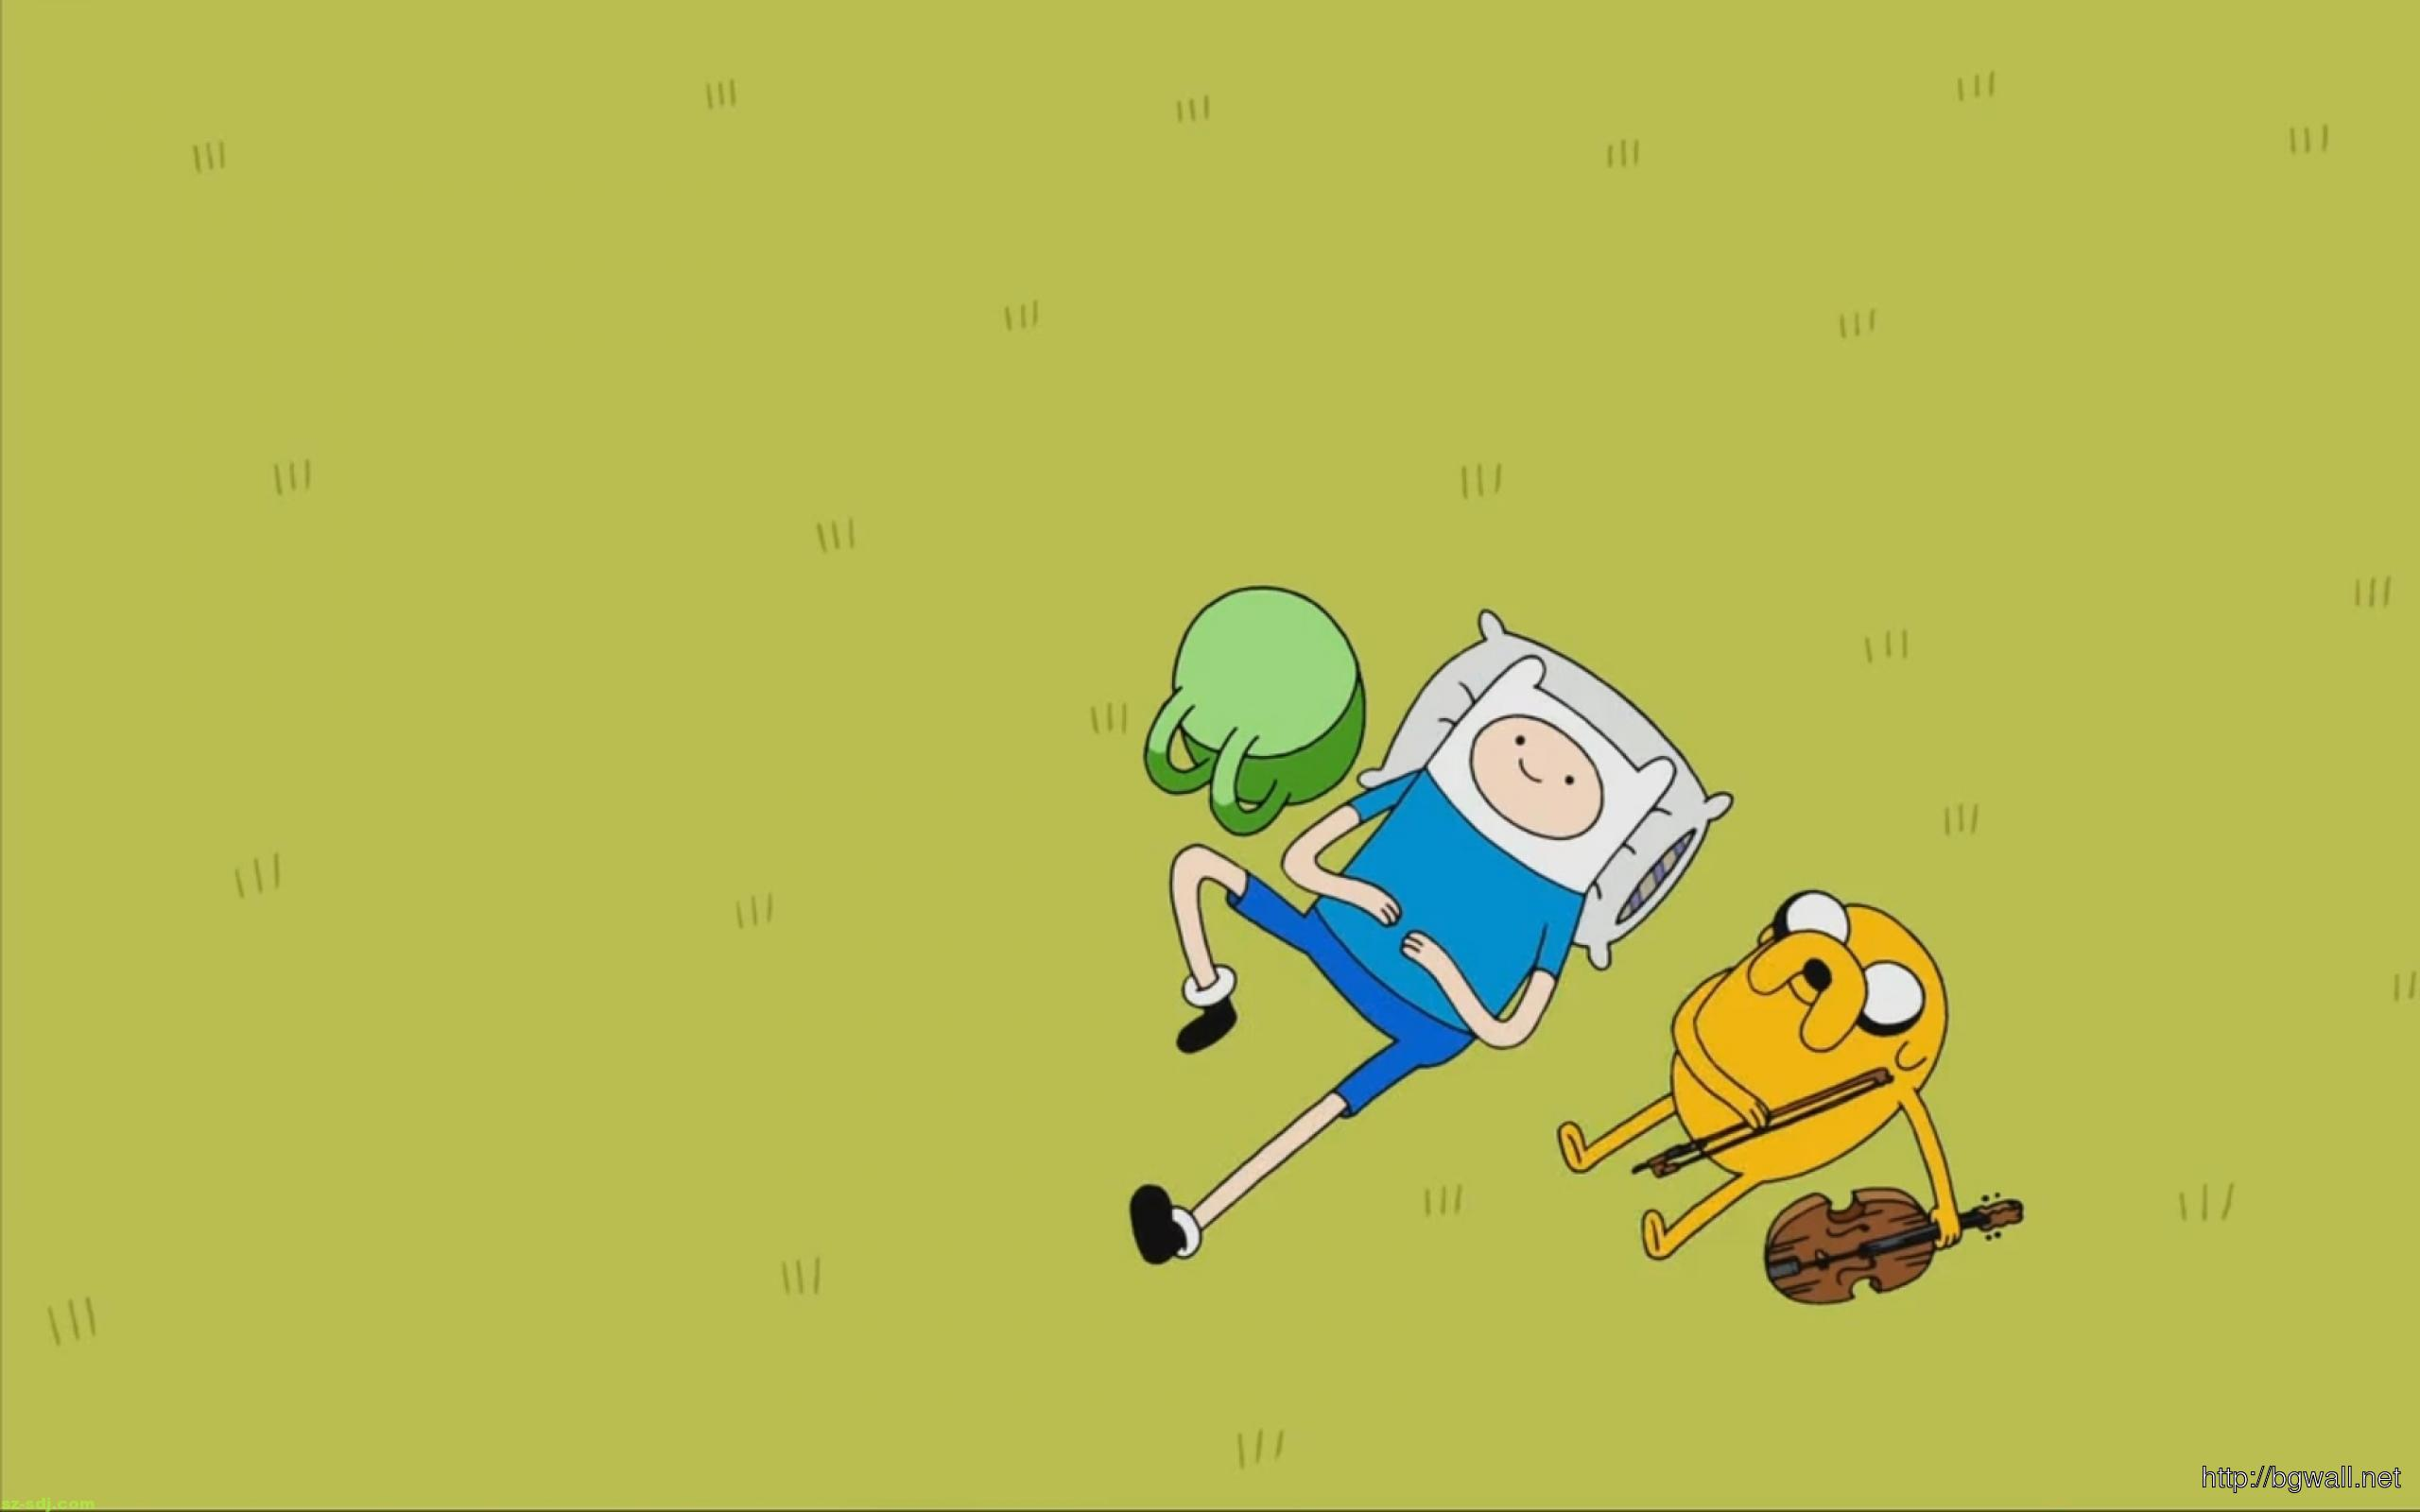 fun-adventure-time-wallpaper-hd